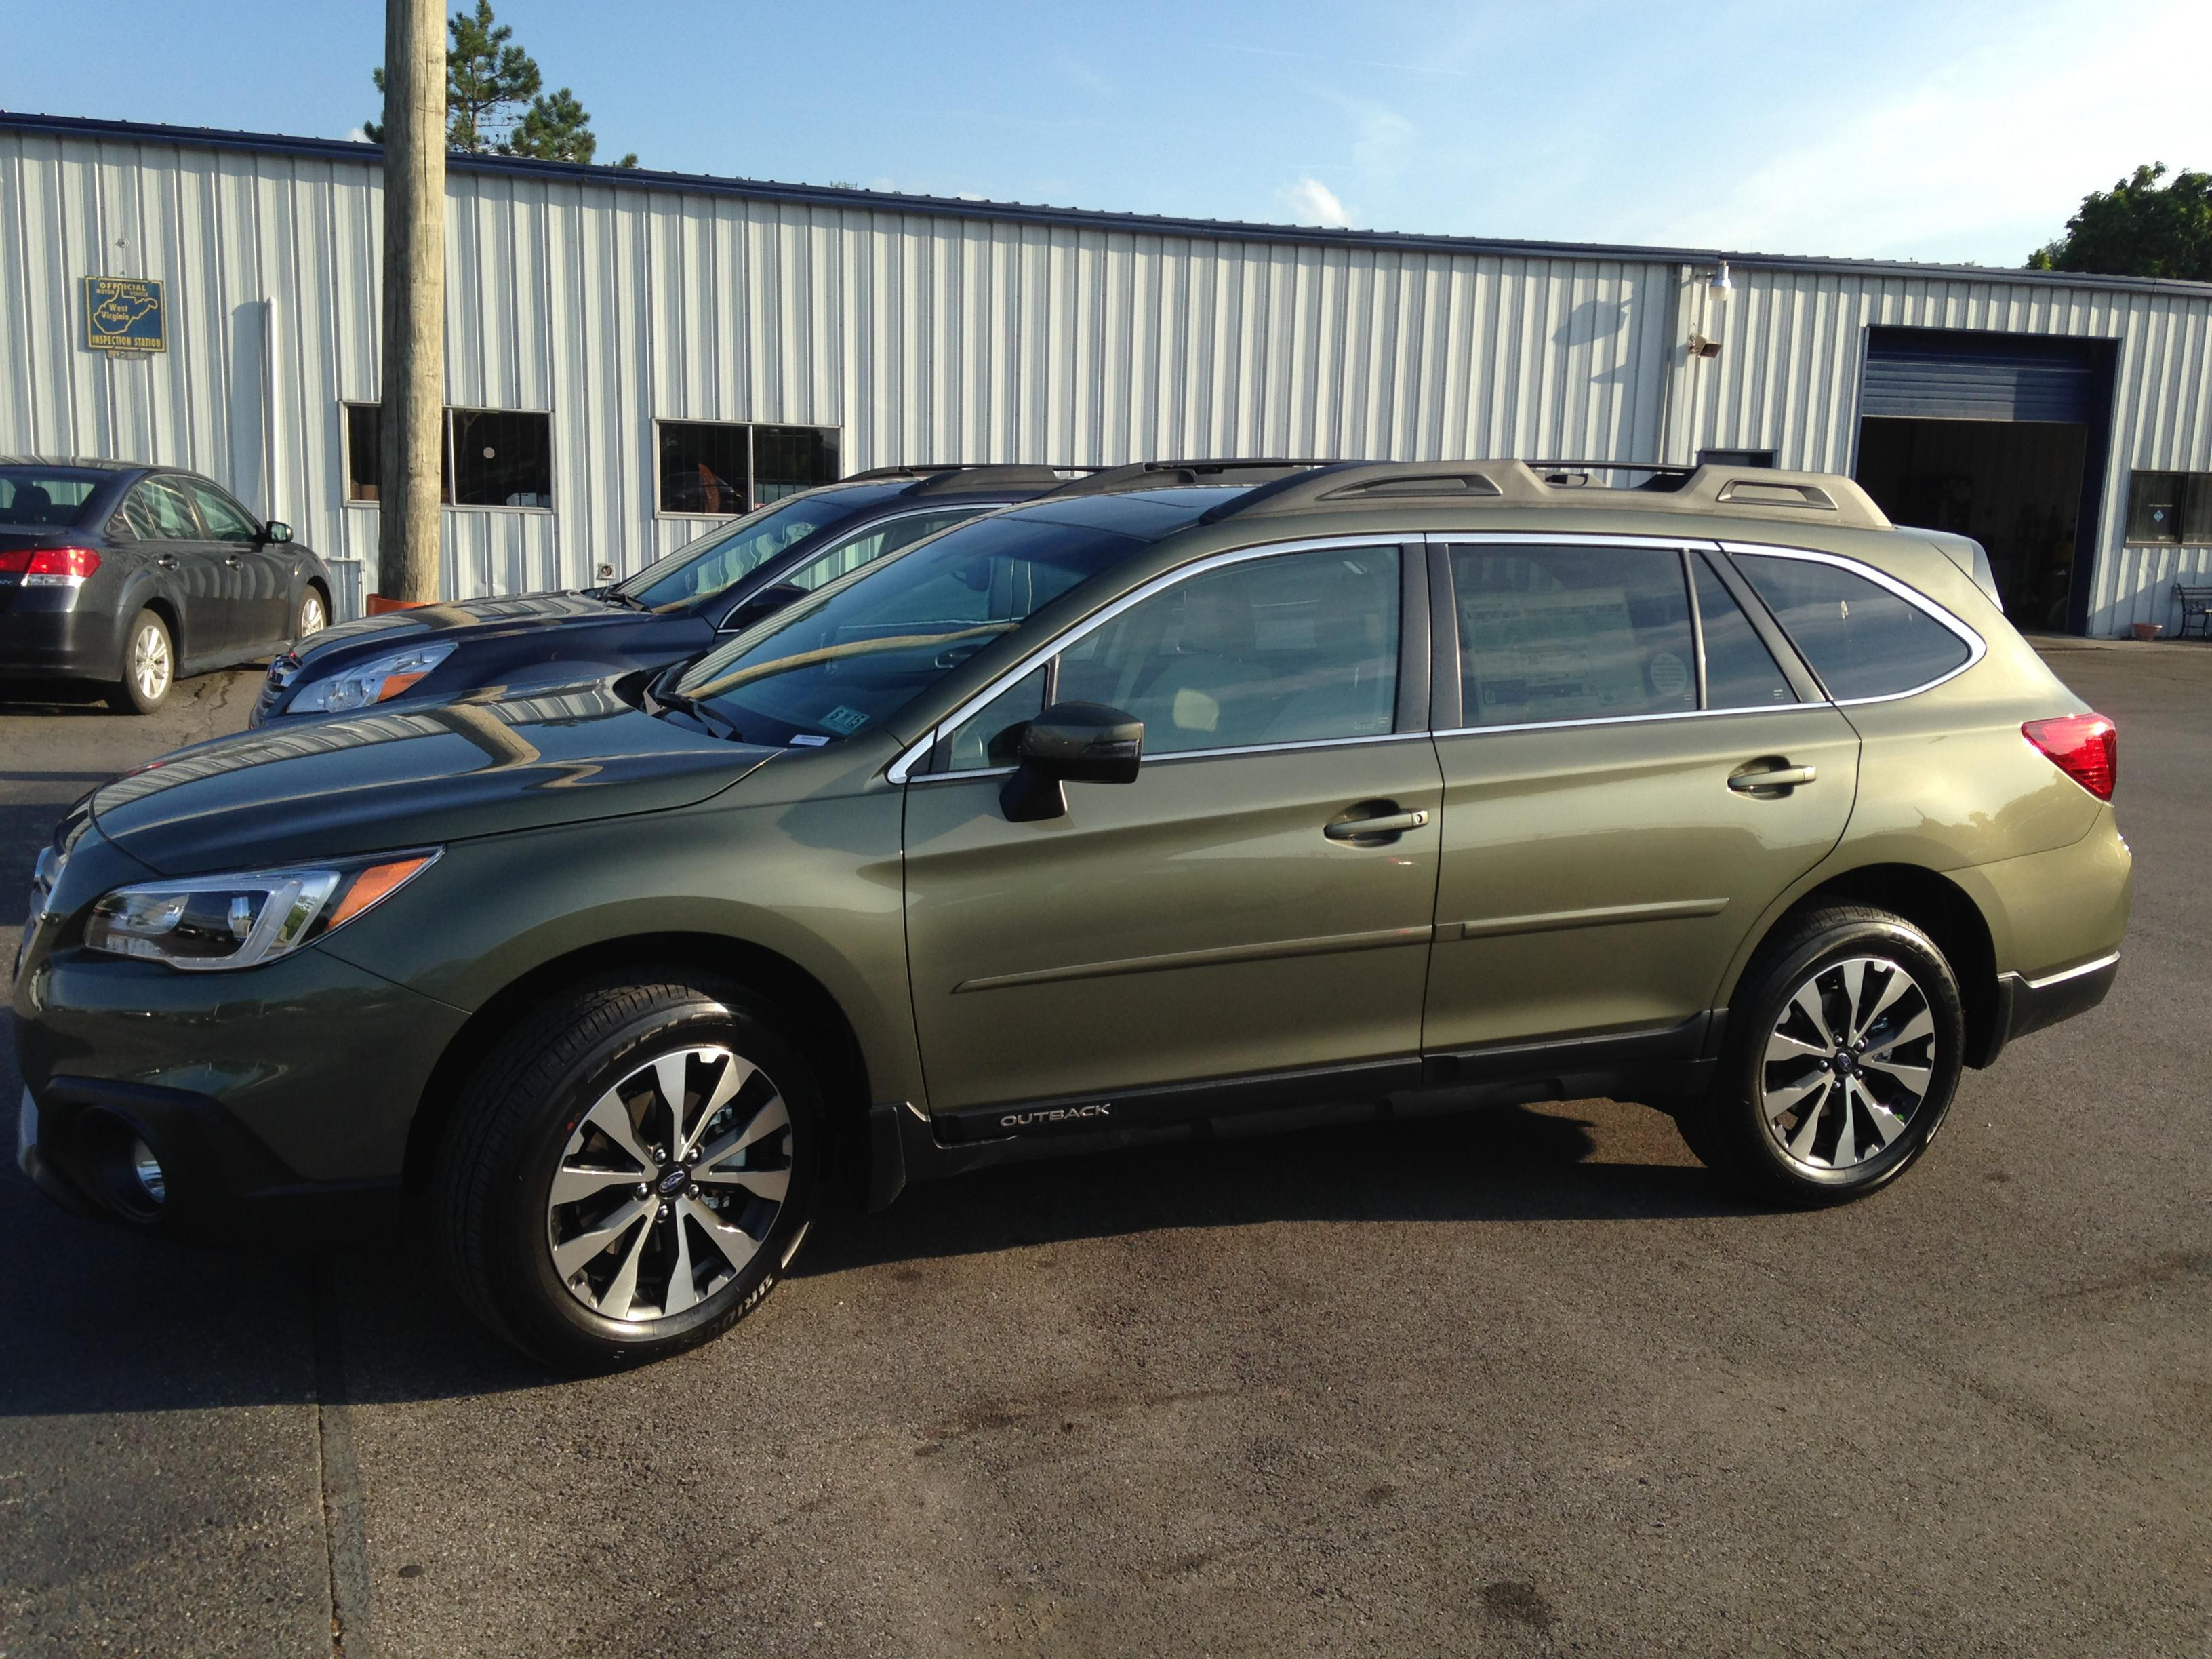 2015 limited wilderness green test drive subaru outback subaru click image for larger version name img1527g views 27475 size 9244 vanachro Gallery